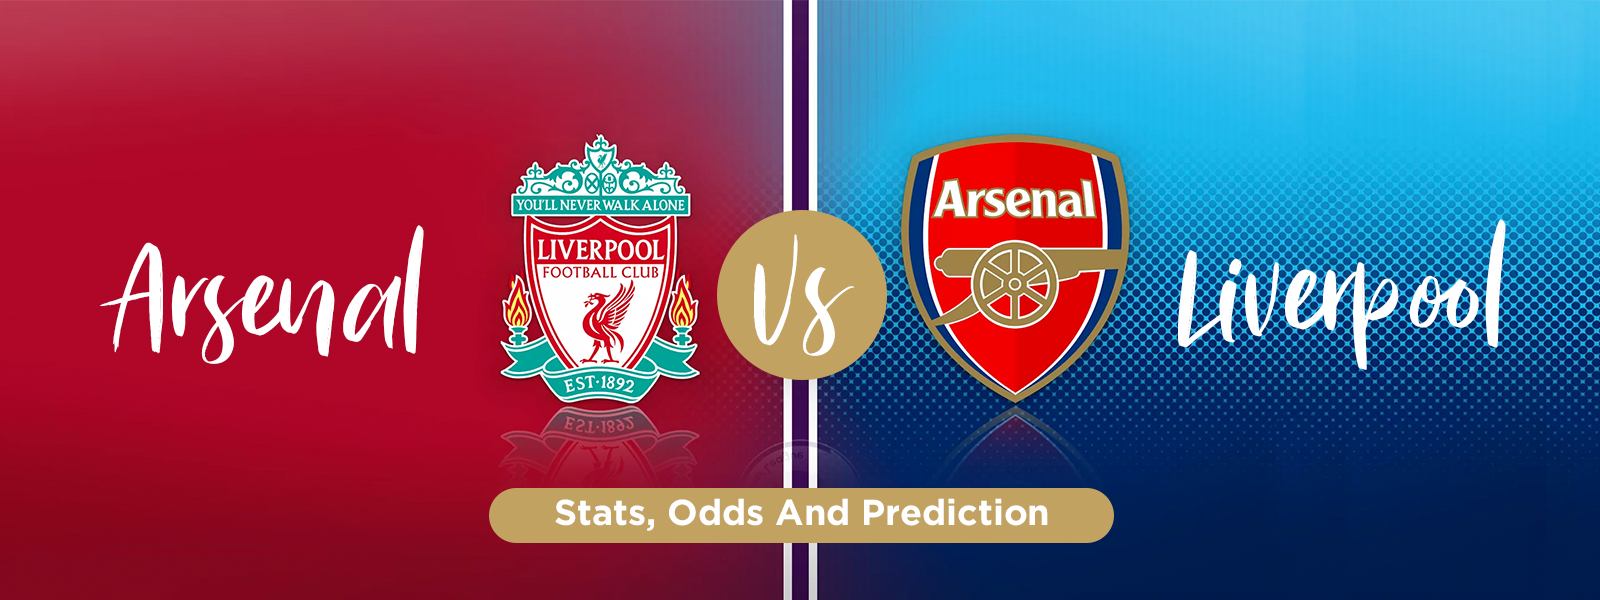 Best Football Prediction on Arsenal vs Liverpool Match with Analysis